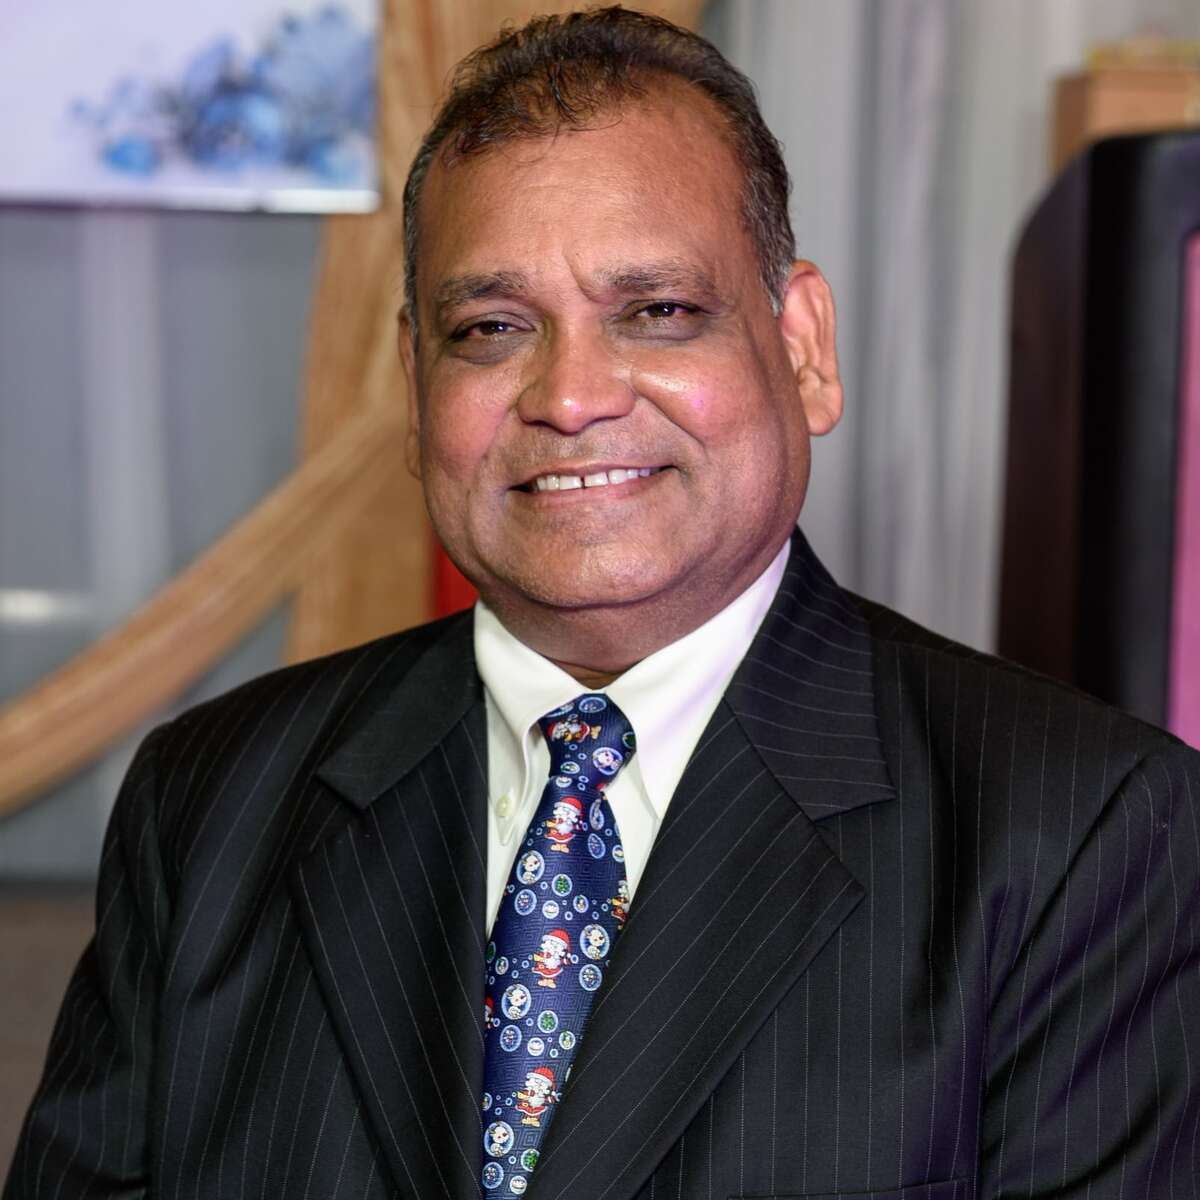 GUEST: Brij Agarwal CONGRESSMAN: Rep. Pete Olson, R-Sugar Land WHO IS HE? Agarwal is a business-owning immigrant and constituent of Olson's who worked in a factory throughout his college years to earn a degree. He now owns several business in the area and employs 1,400 people.